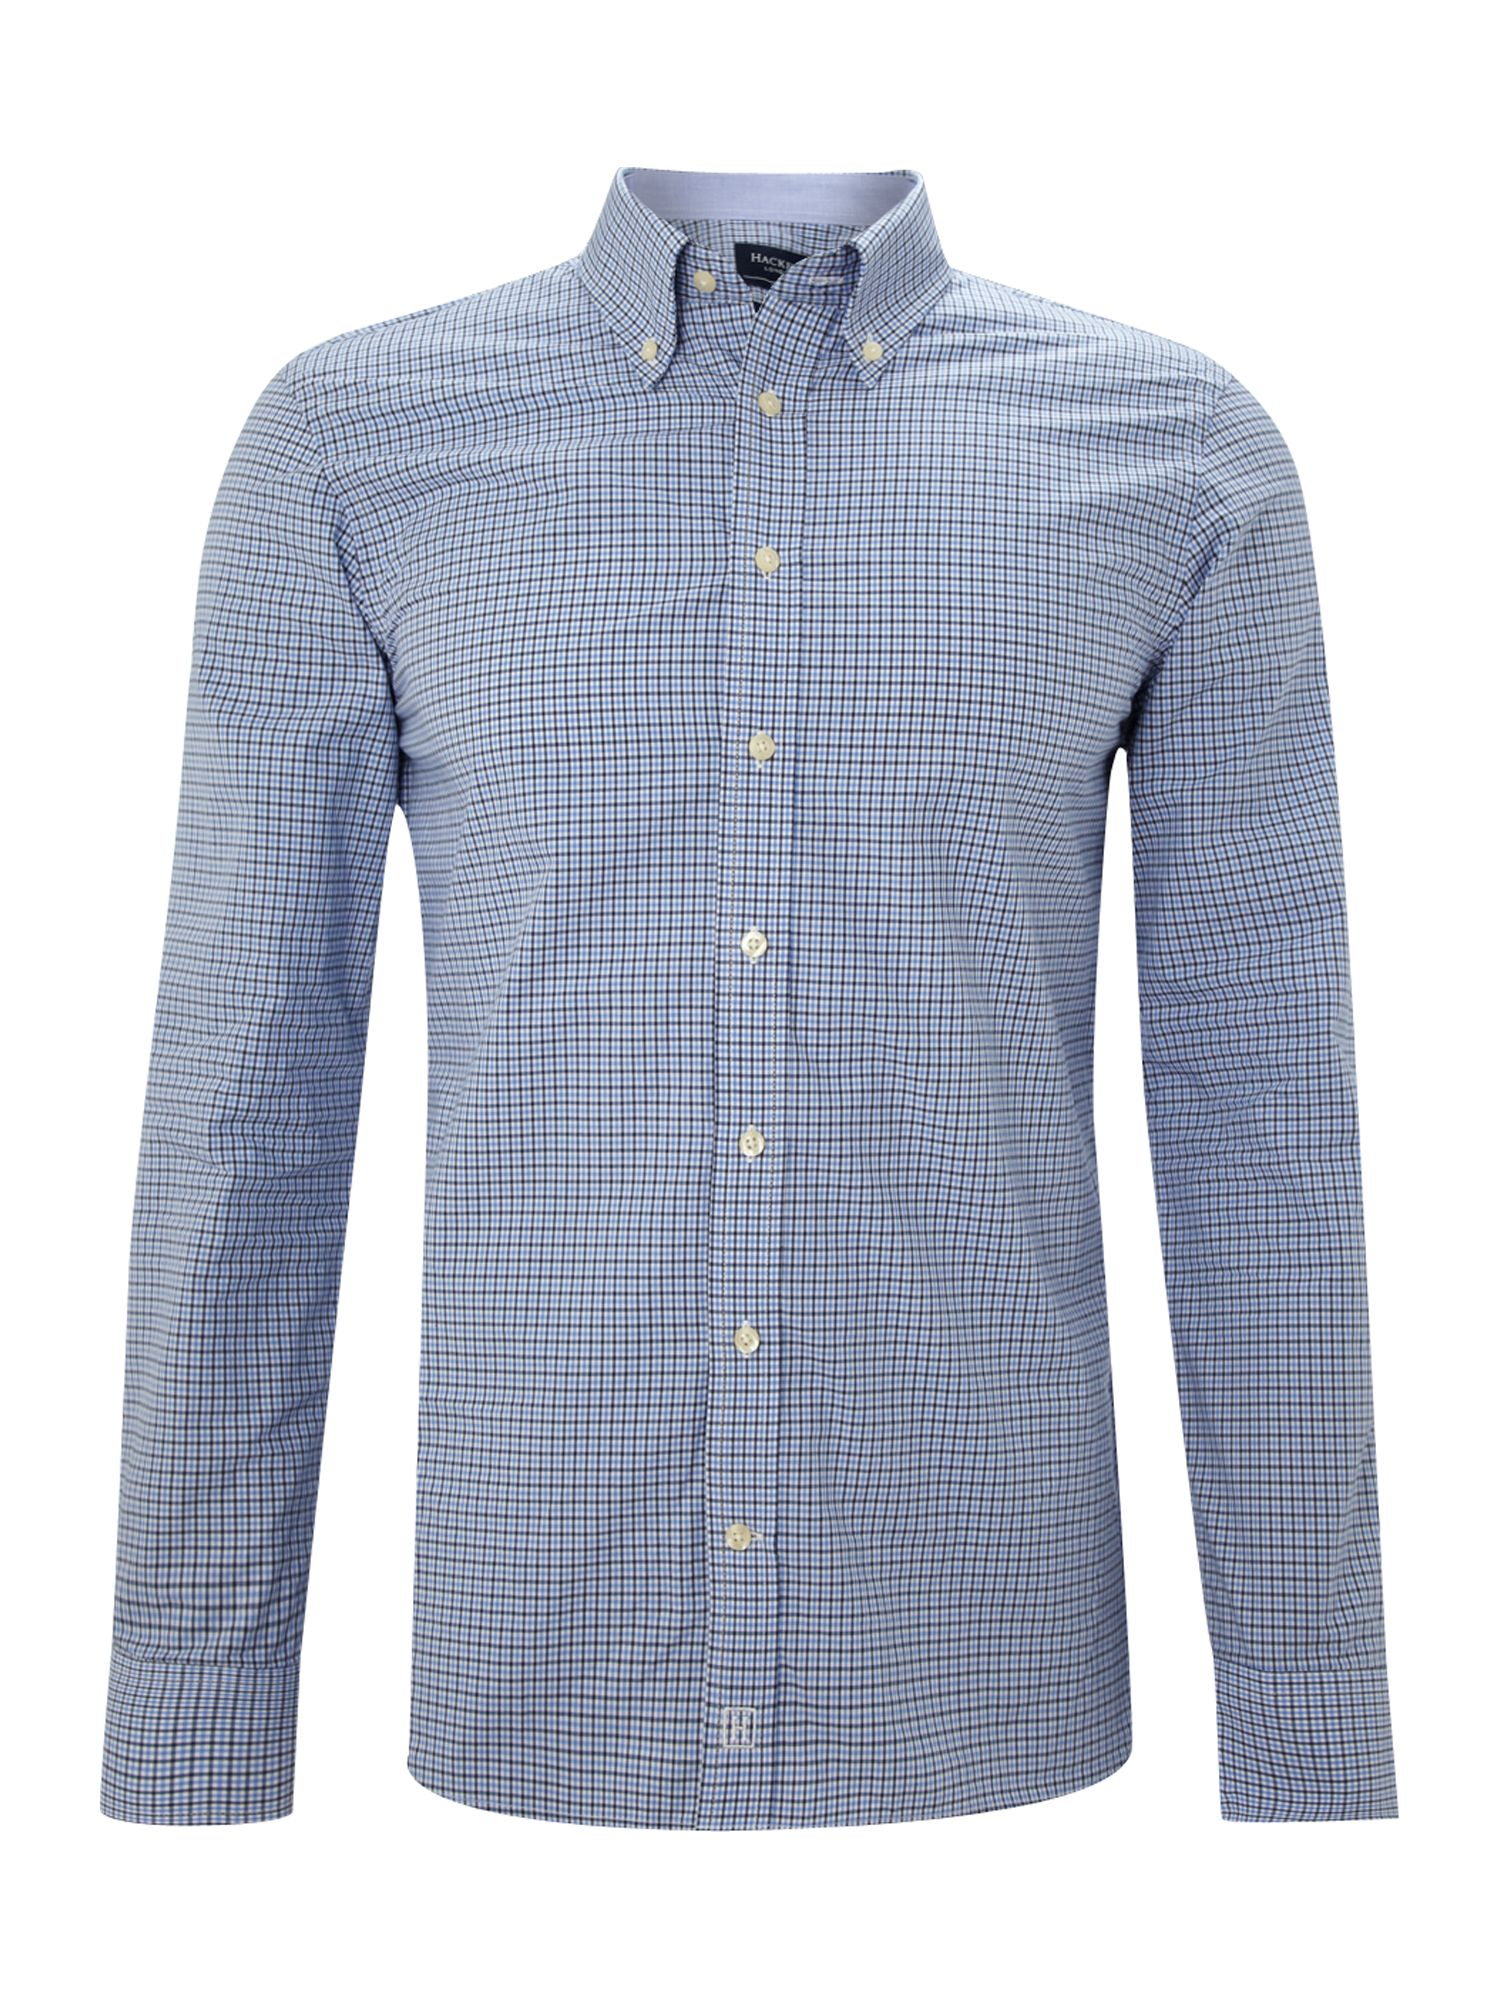 Hackett Long Sleeve Two Tone Gingham Shirt In Blue For Men